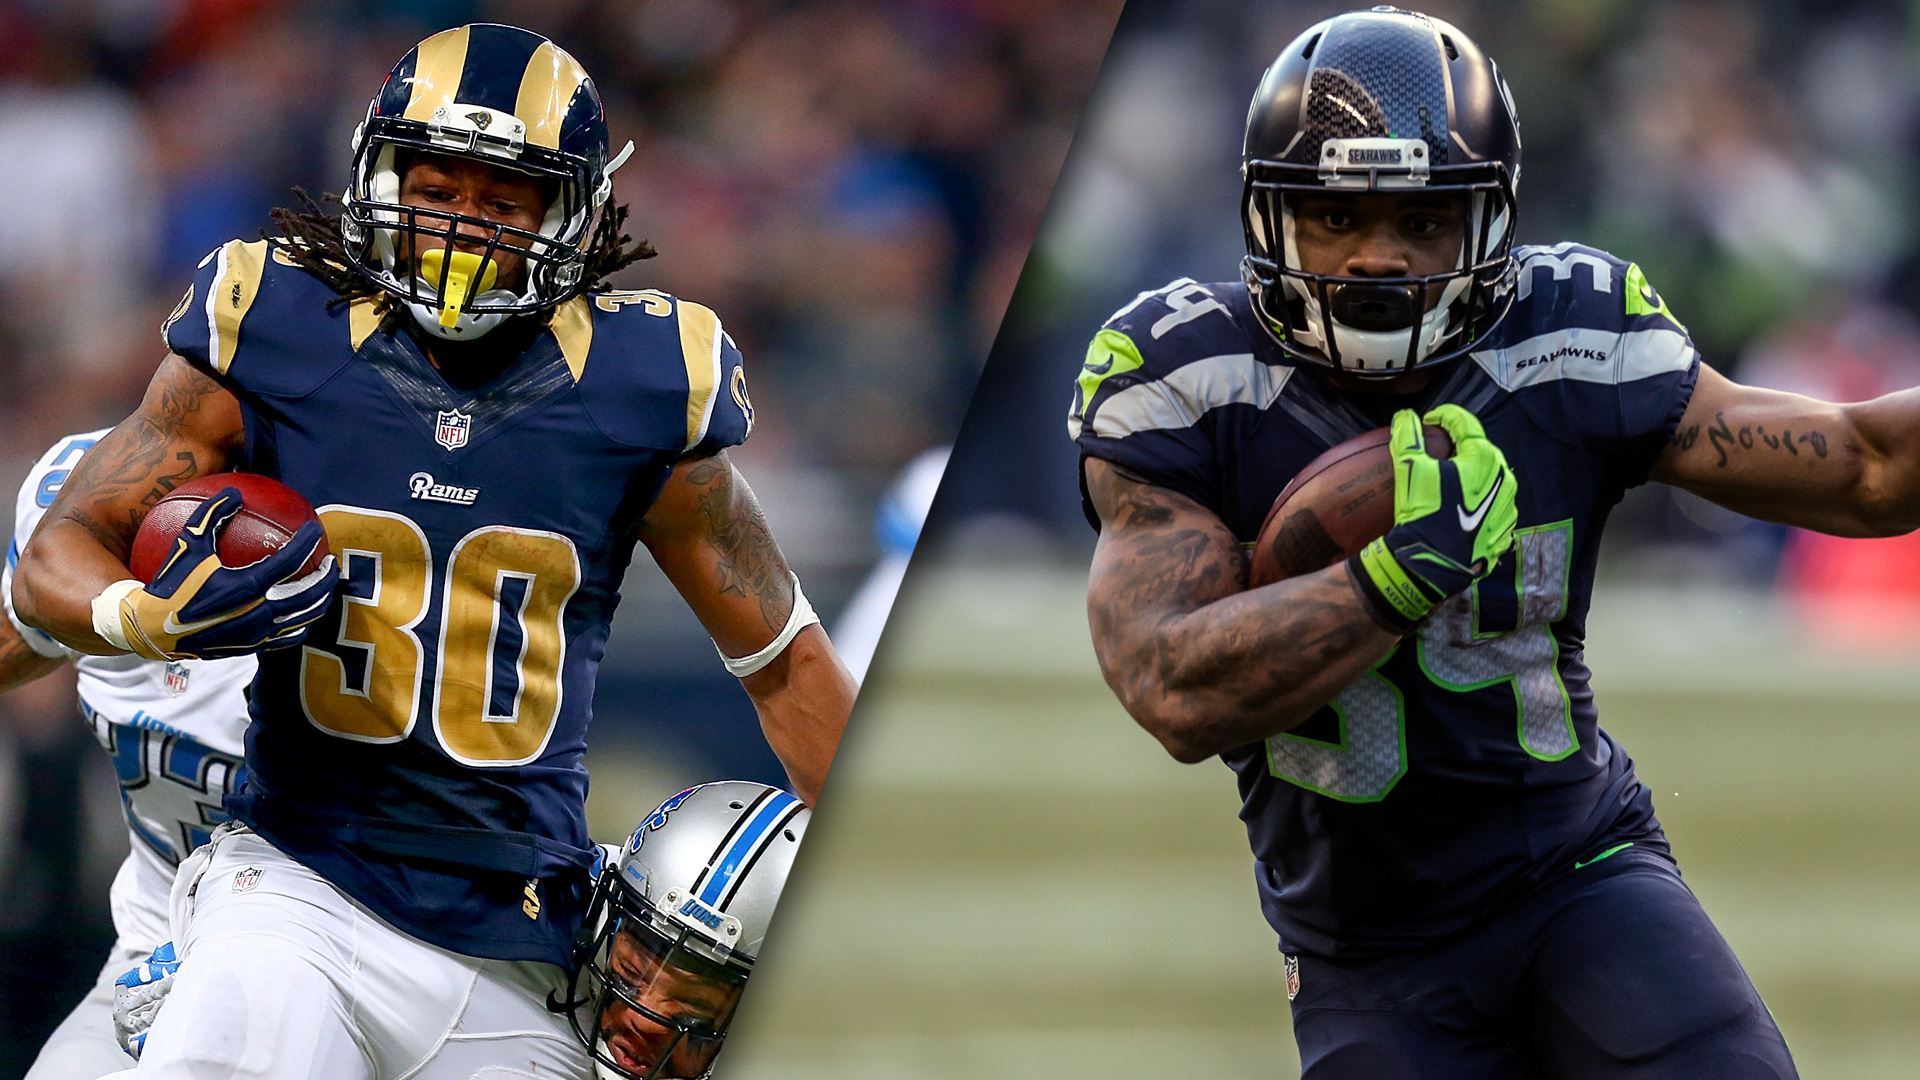 week one fantasy football projections 2017 stats fantasy football: another award, plus week 17 tiers  stats'  award-winning fantasy projections give high-stakes dfs pros the ultimate  advantage  first, i hope no one was thrown off by the switch from wednesday.